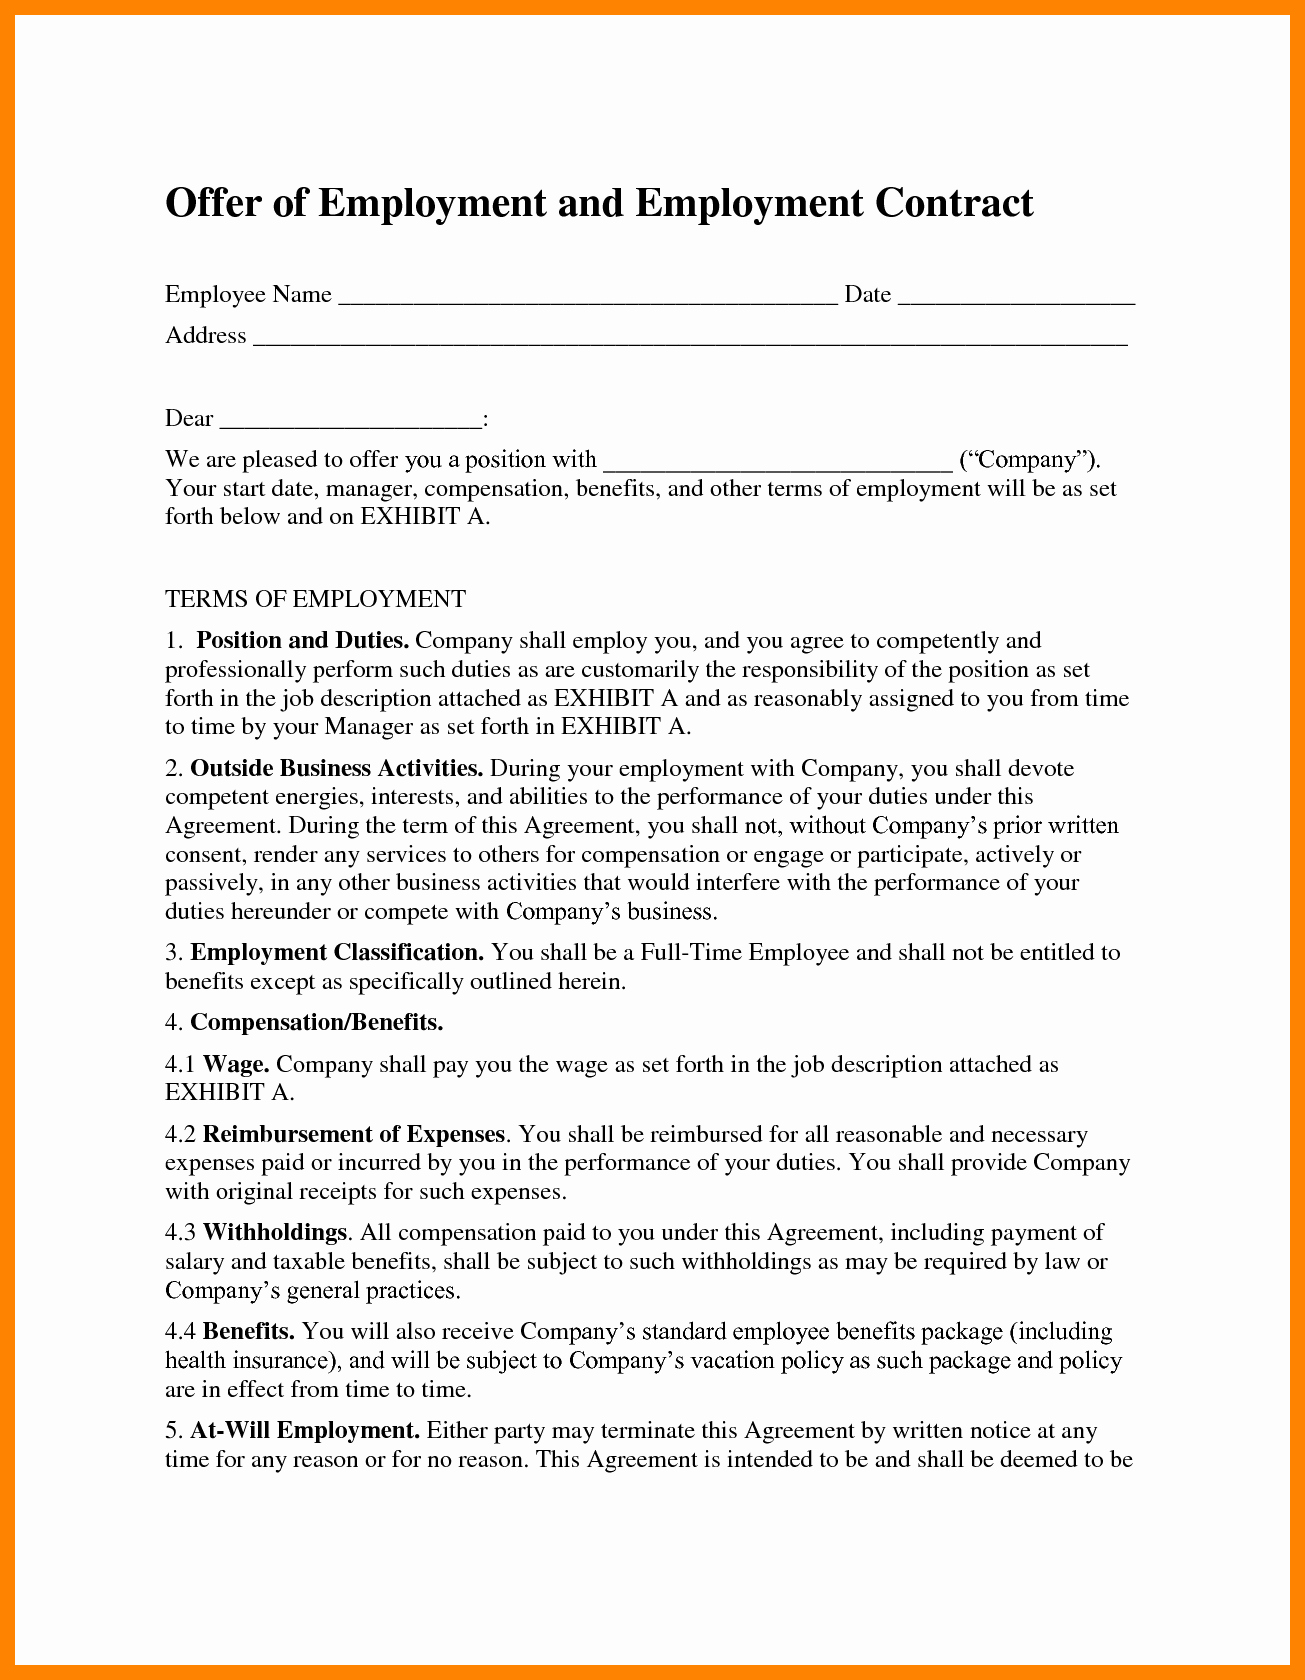 Employment Contract Template Word Best Of Employment Contract Template Word Portablegasgrillweber